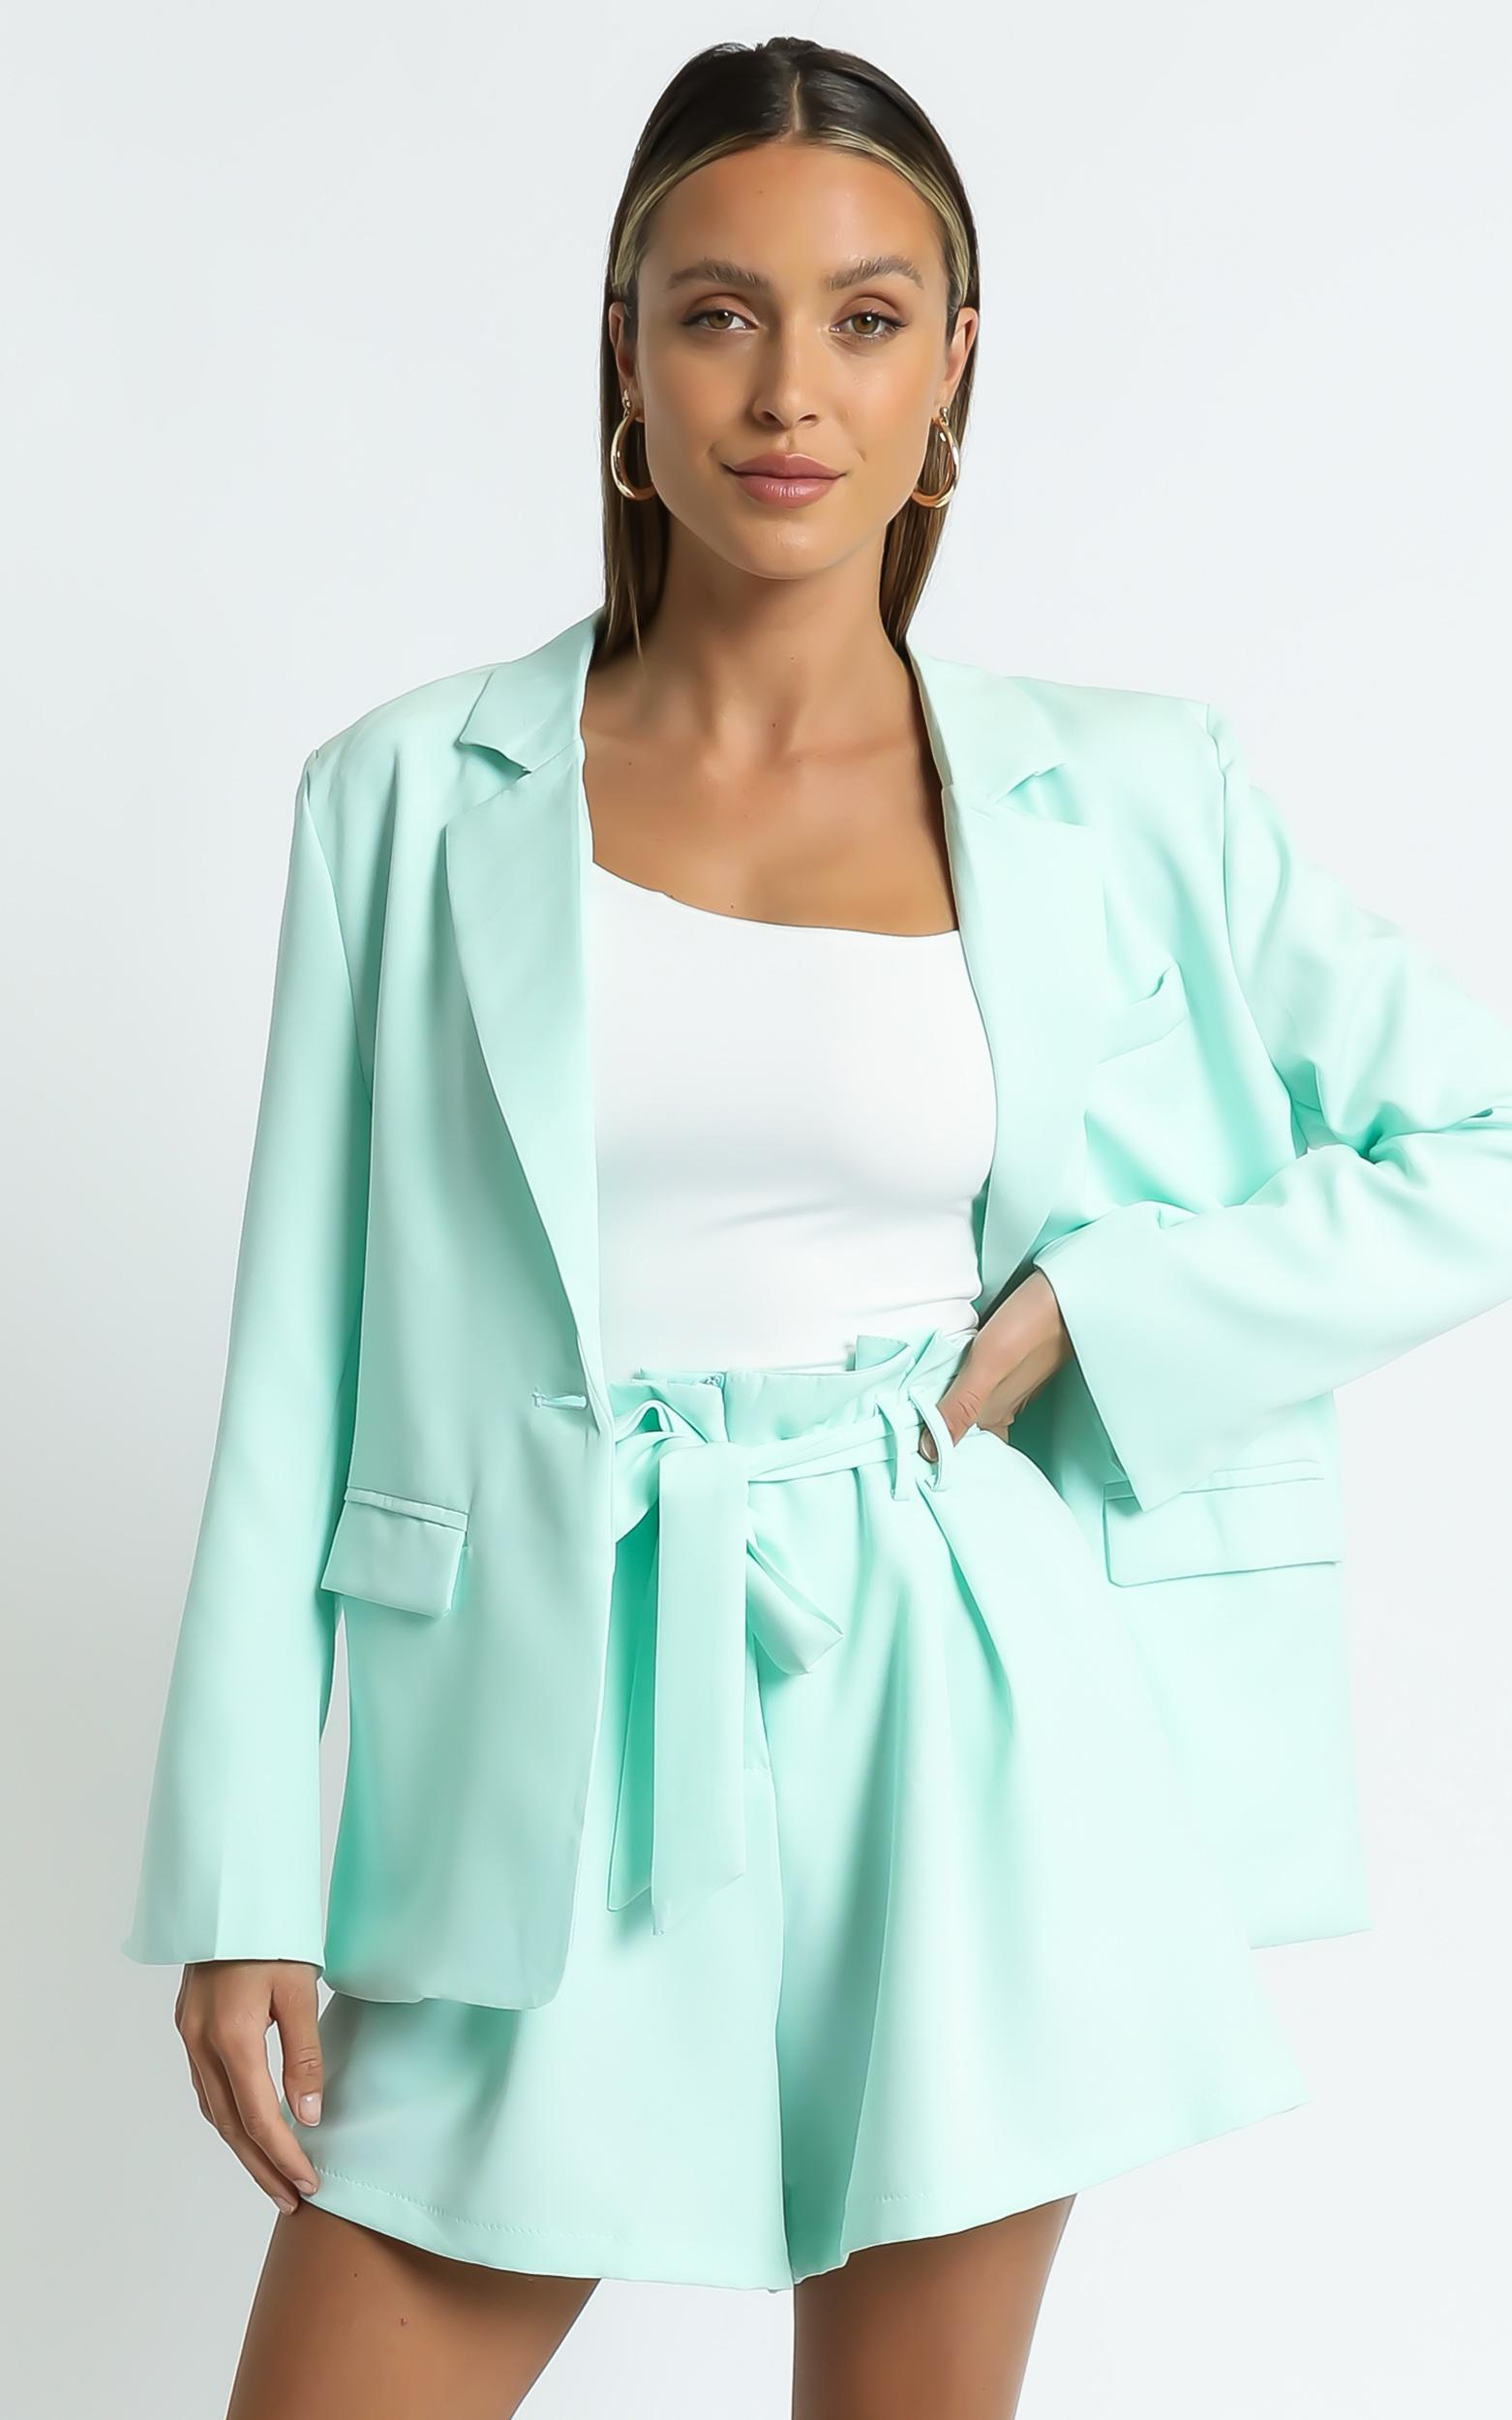 Amazona Blazer in Sage - 6 (XS), GRN1, hi-res image number null